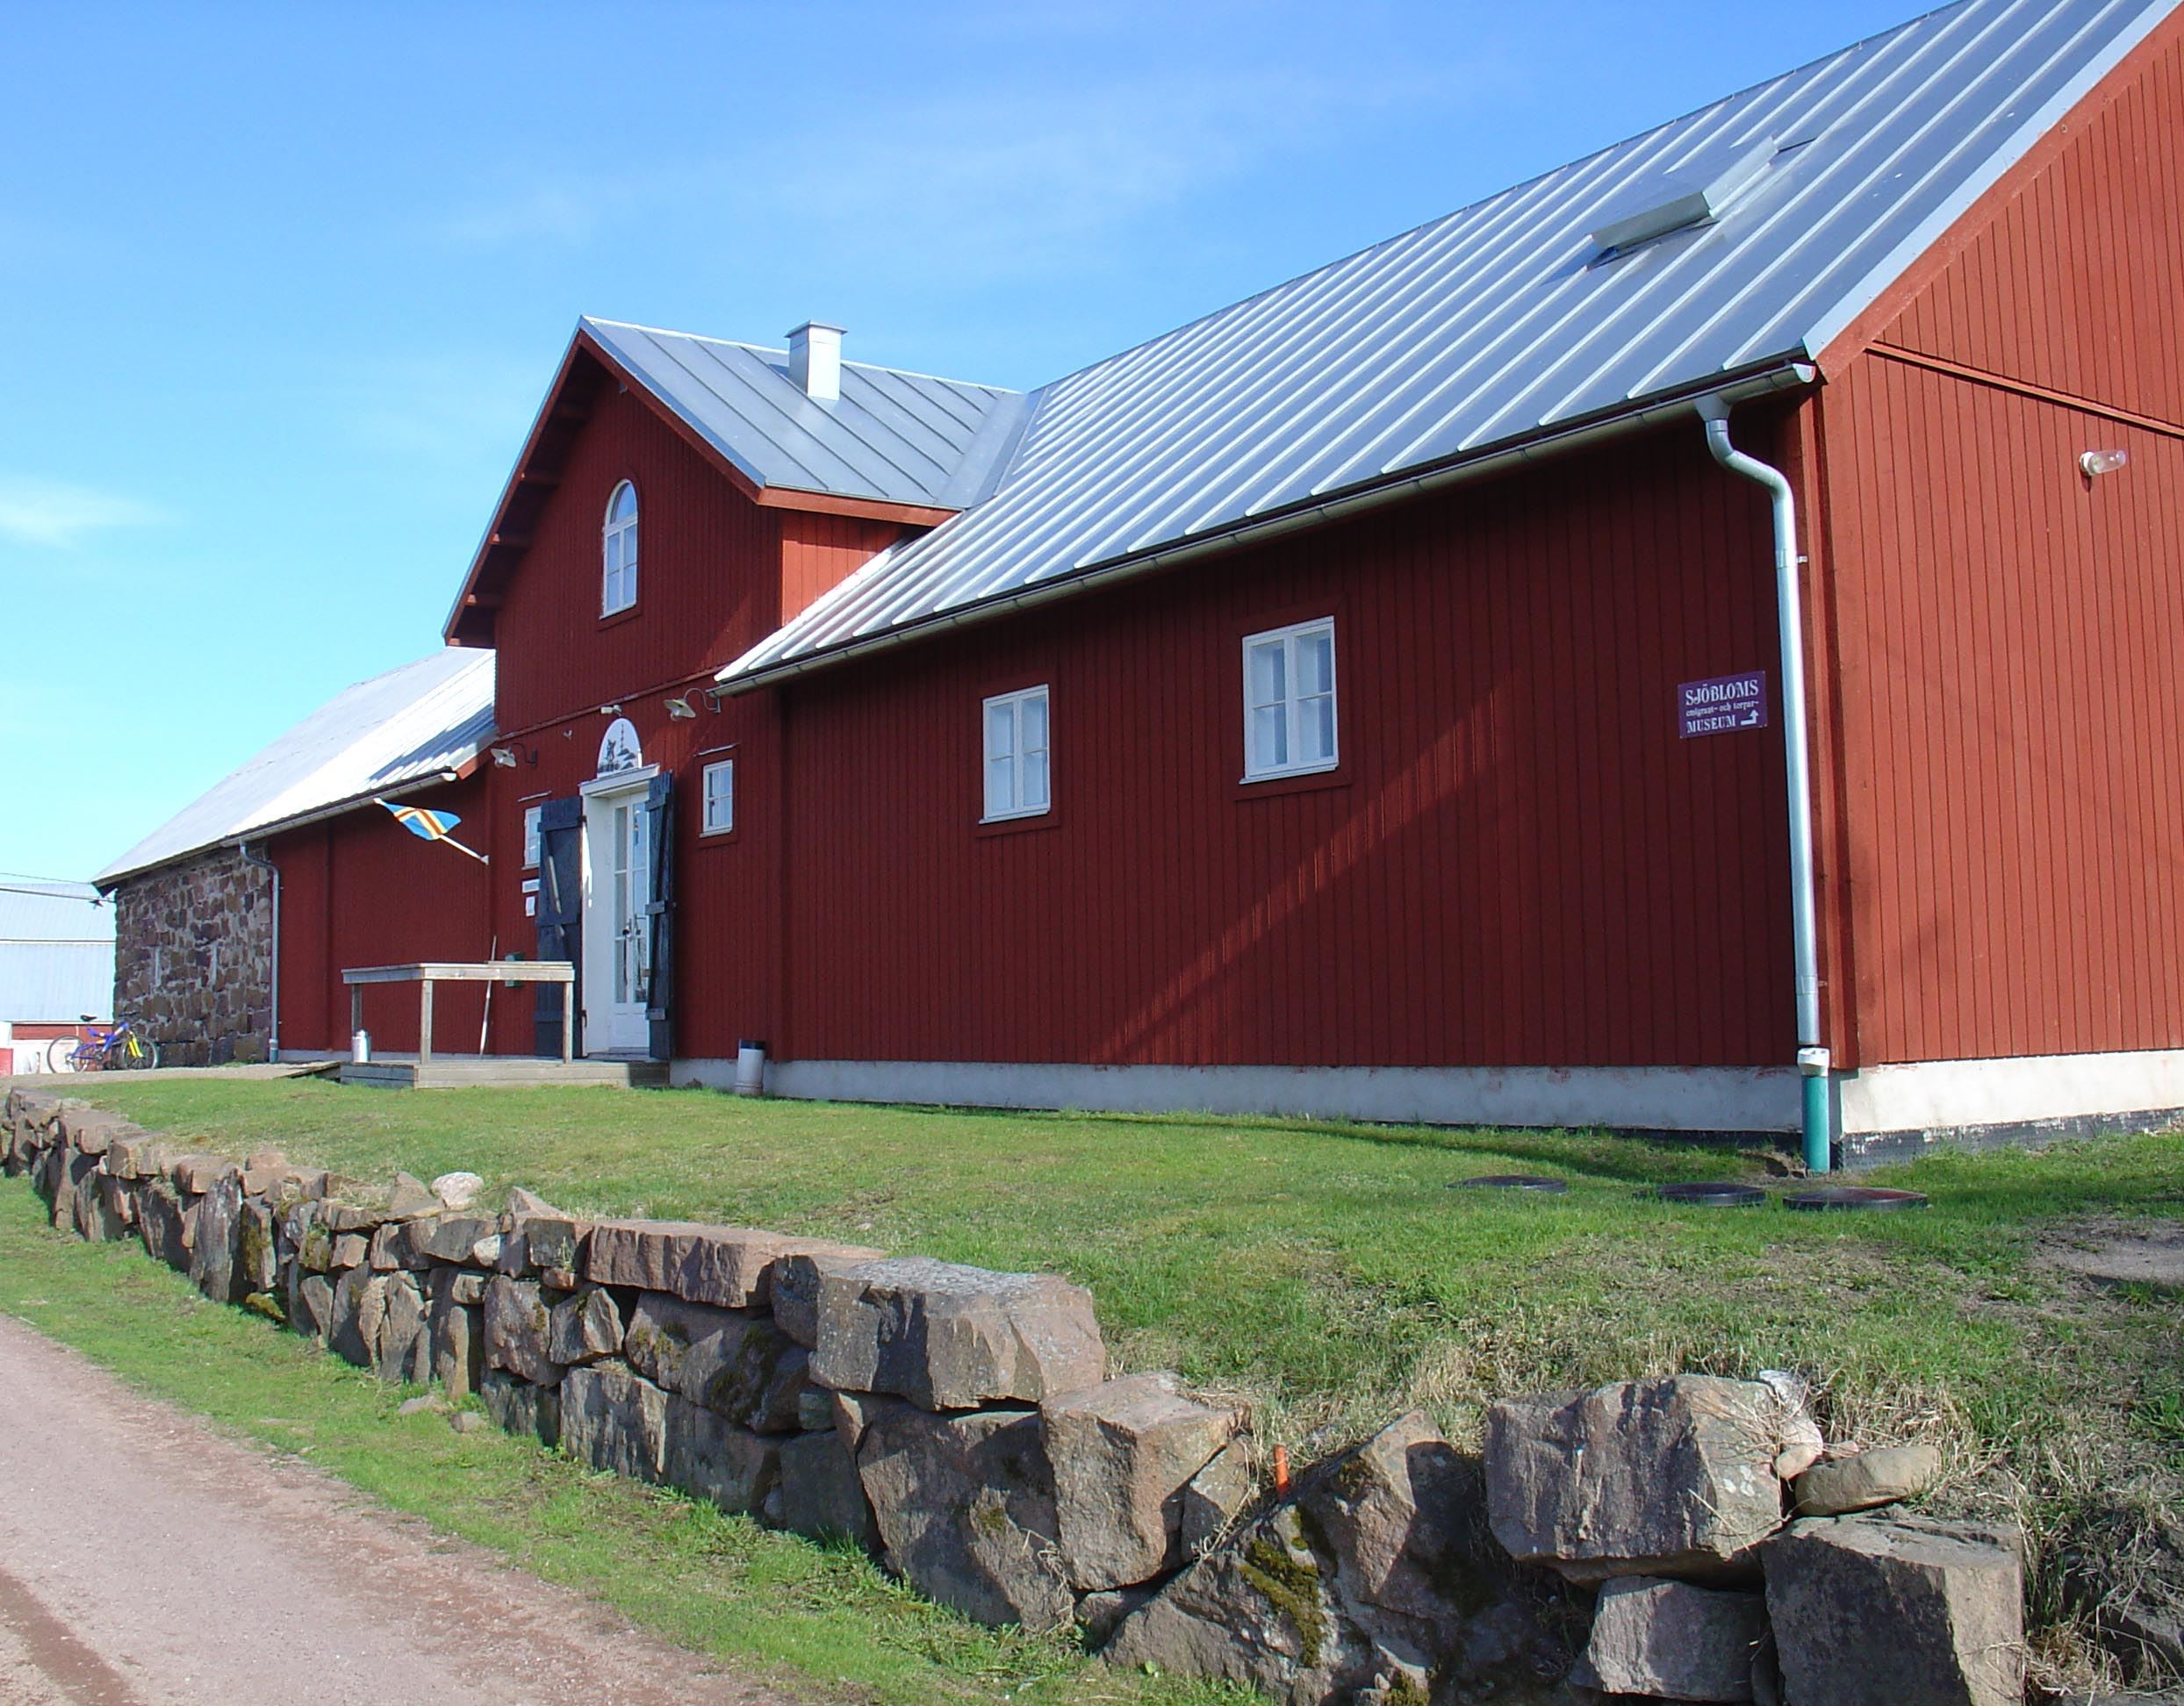 The Önningeby museum